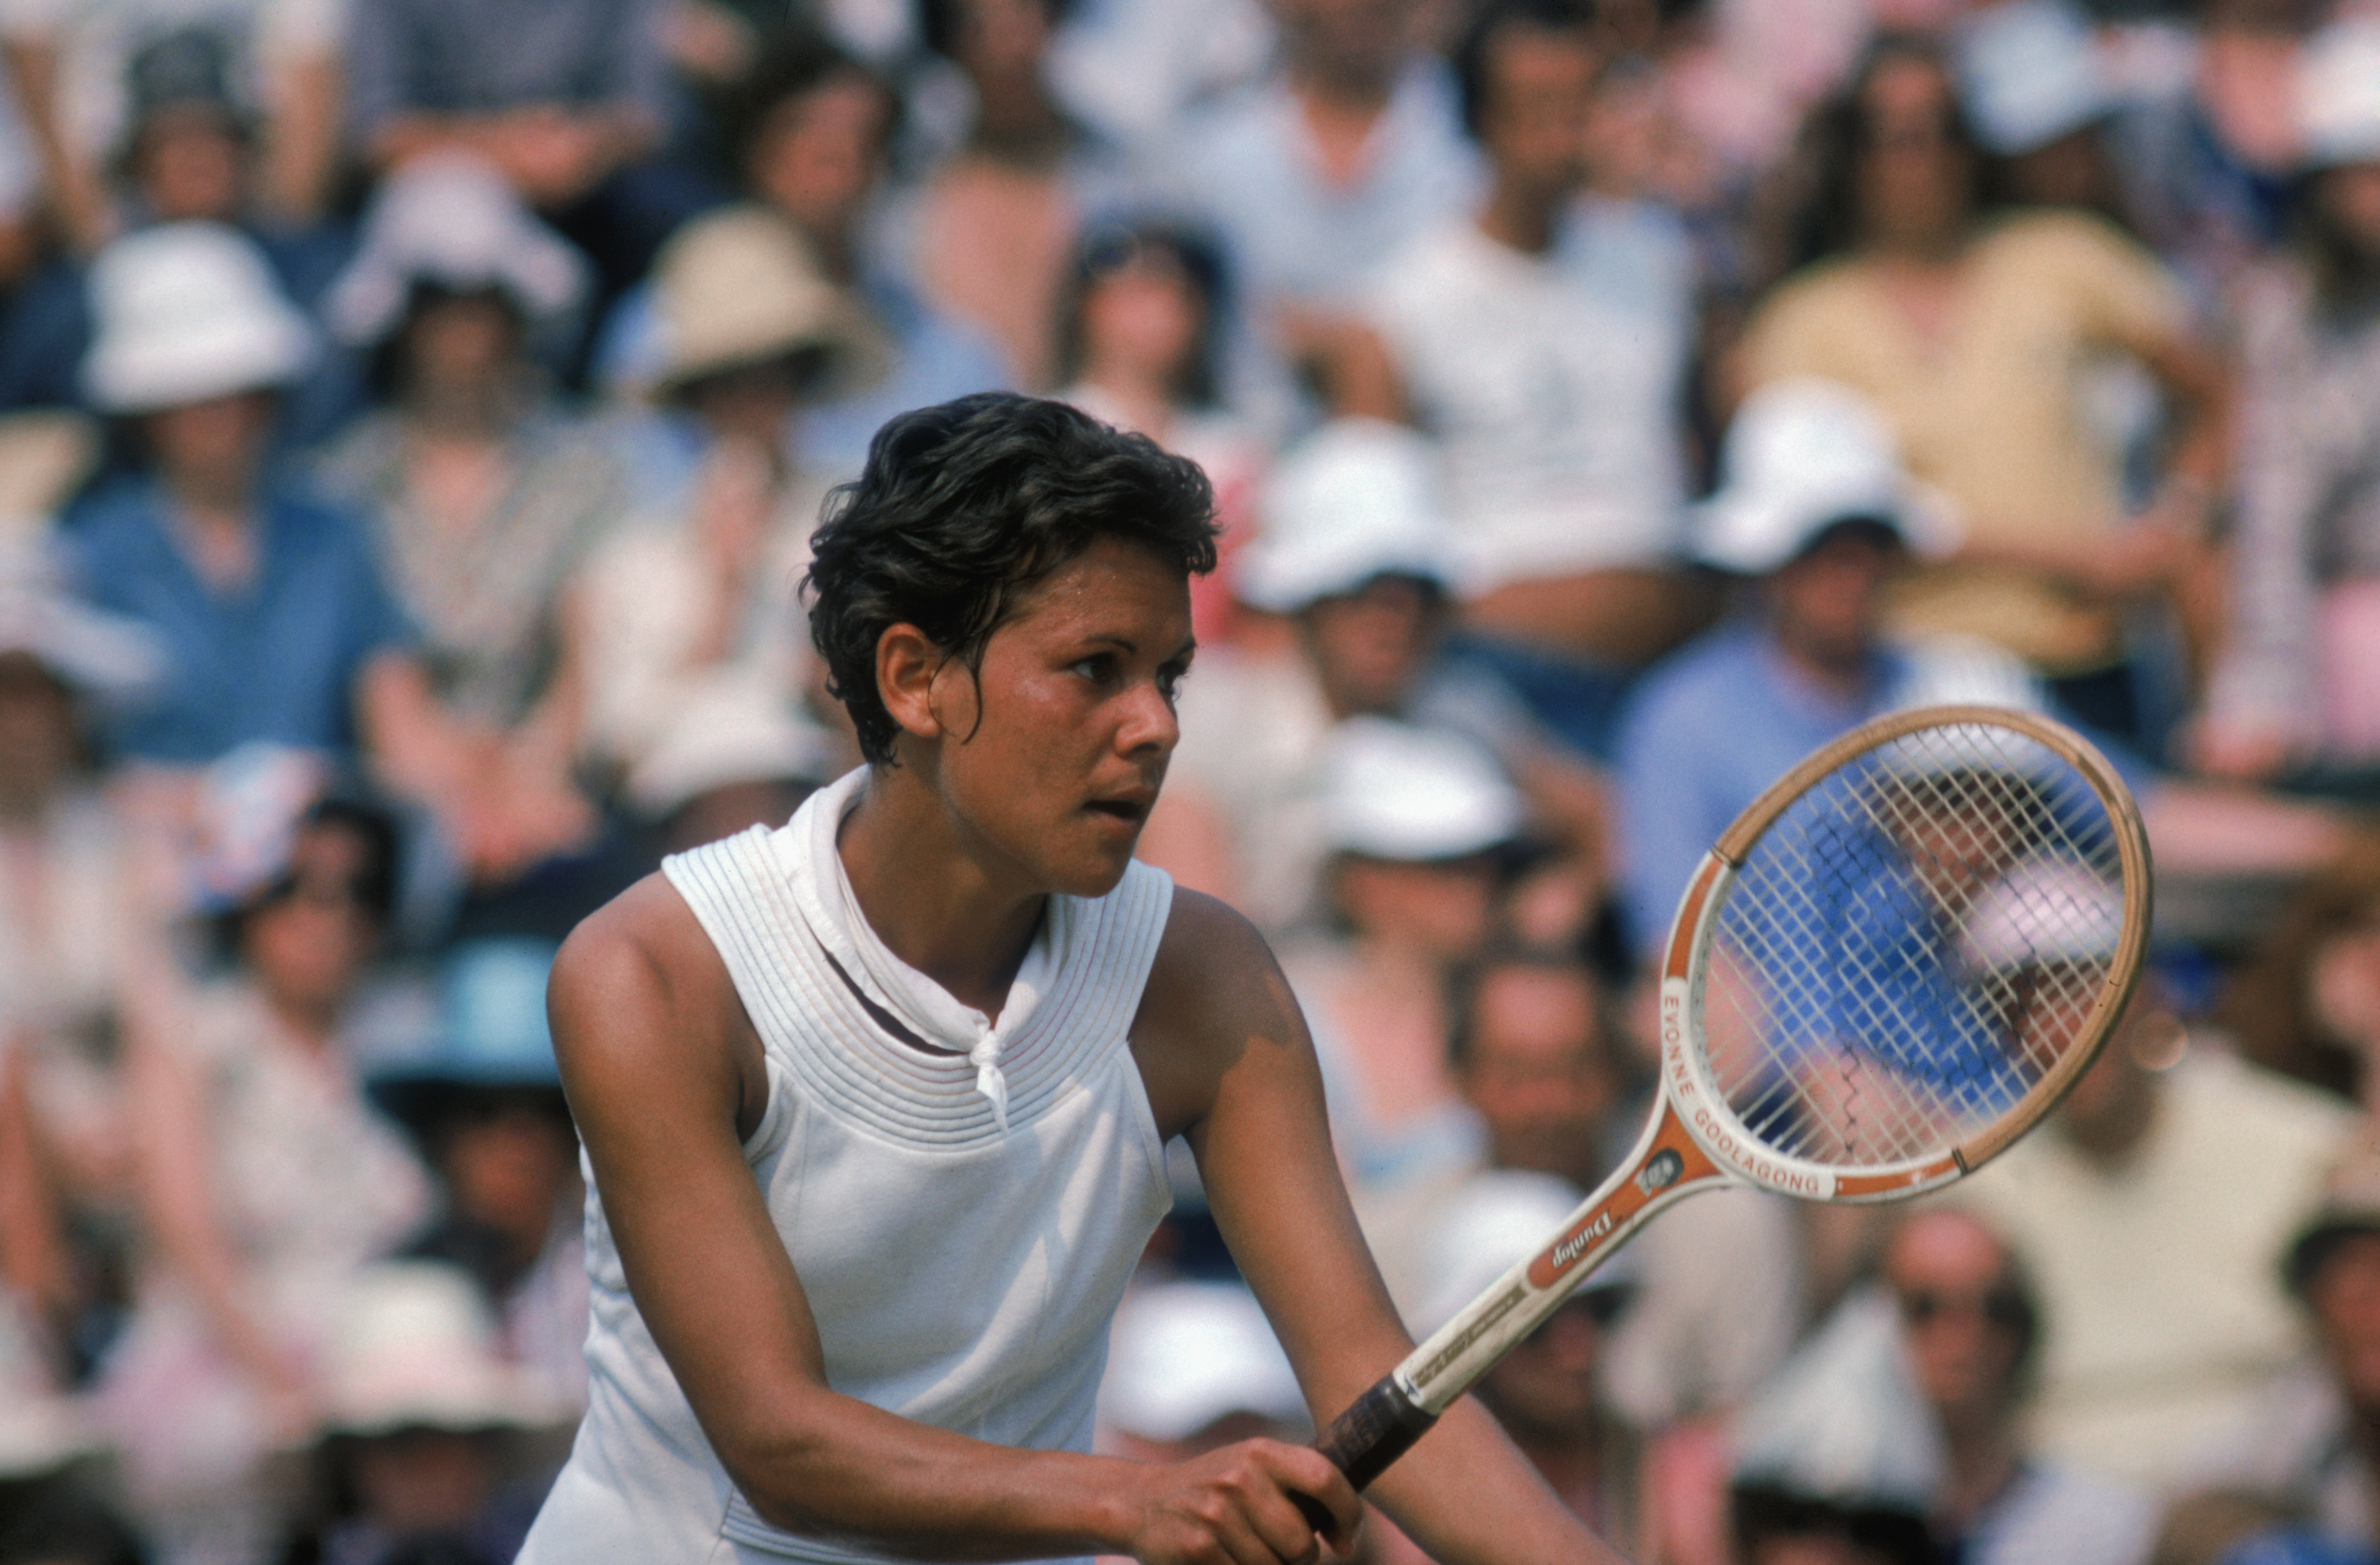 The round robin format began (two groups of four players, after first round elimination) and Australian Evonne Goolagong won.